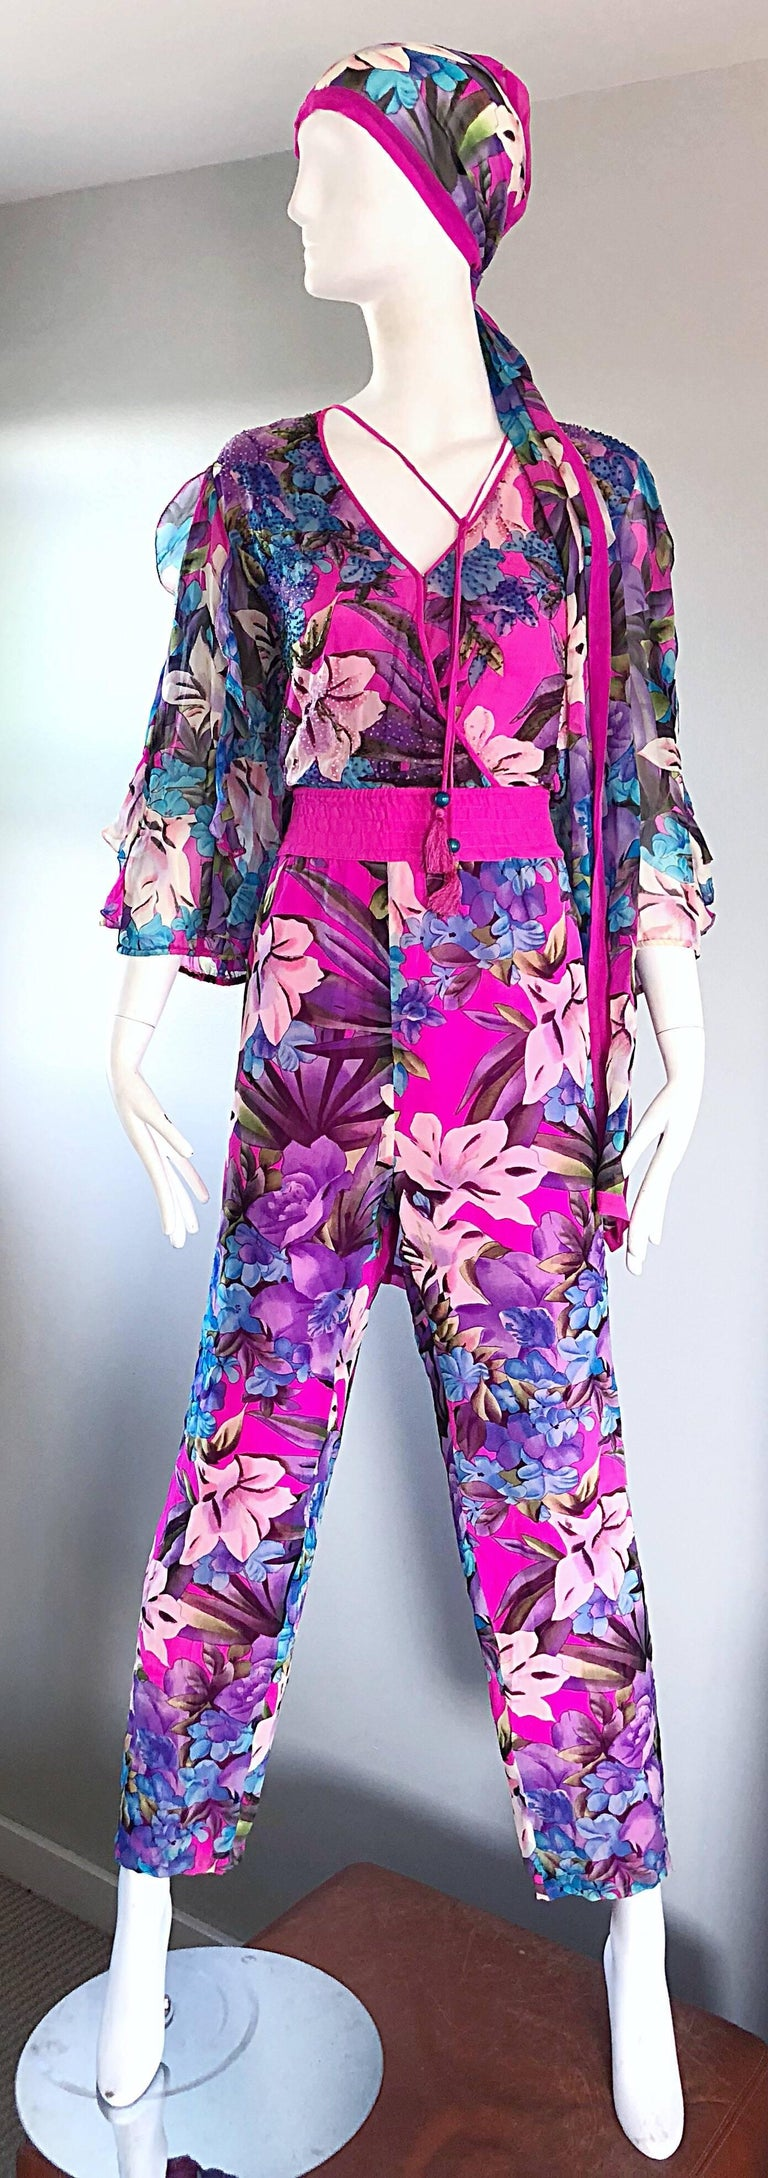 Amazing vintage DIANE FREIS silk chiffon beaded jumpsuit! Features vibrant colors of pink, purple and blue in a chic floral print throughout. Hundreds of hand-sewn seed beads on the bodice. Inner hidden snap at bust allows to control cleavage